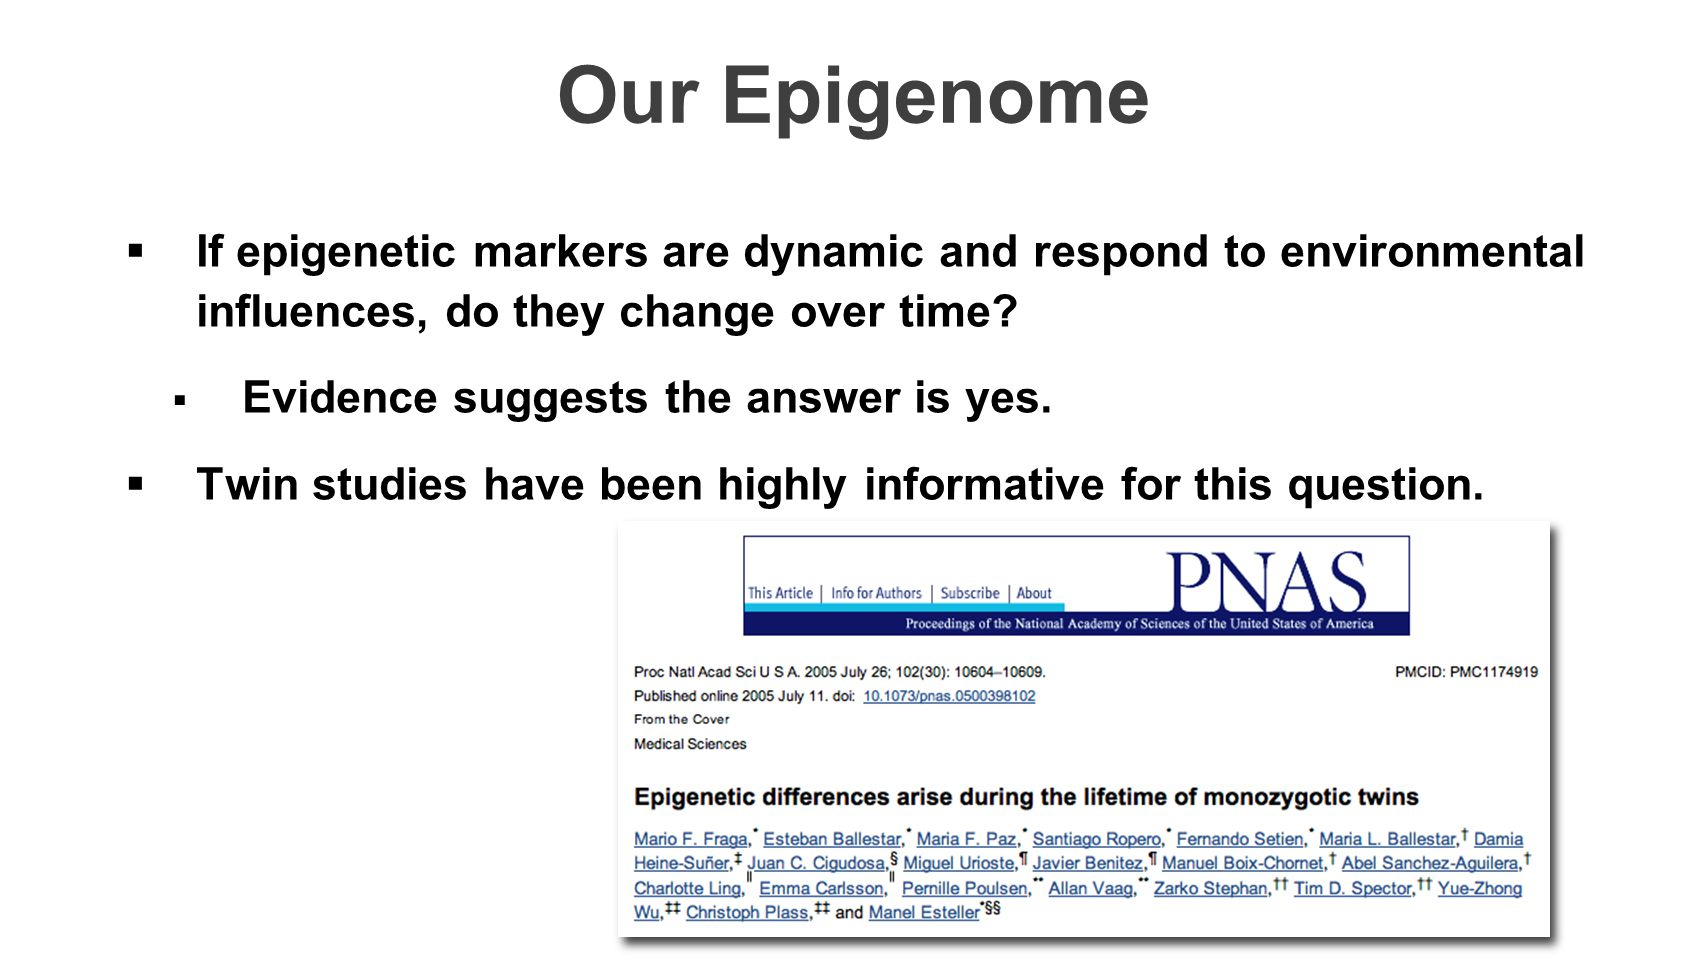 Our Epigenome If epigenetic markers are dynamic and respond to environmental influences, do they change over time